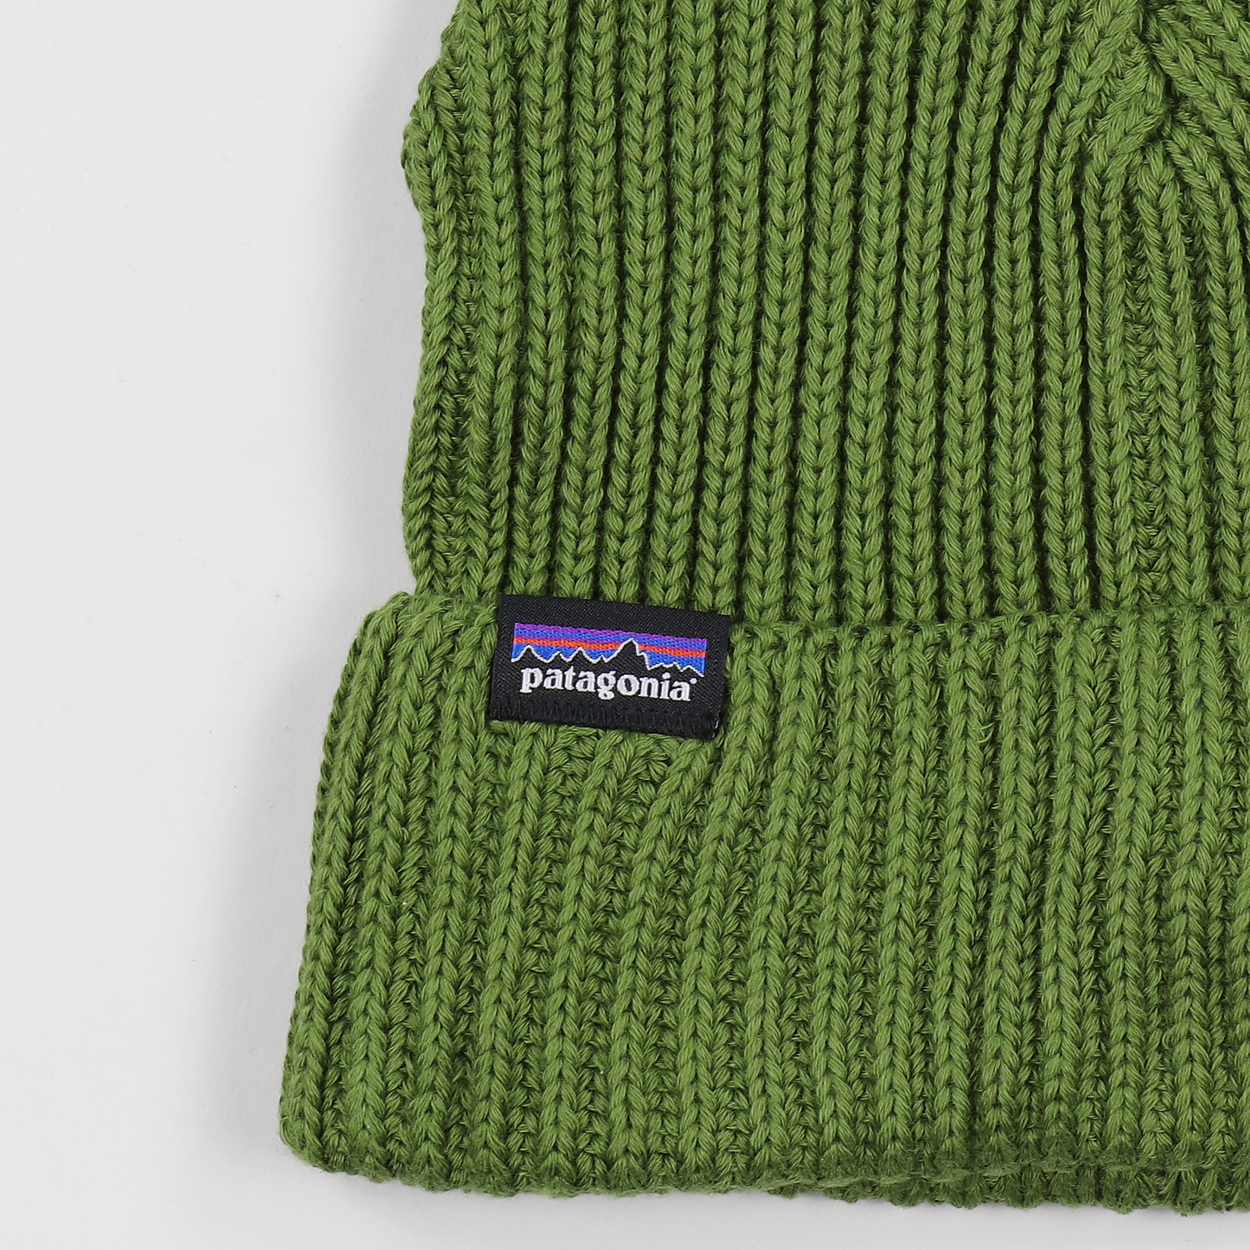 d8310035cbe Patagonia s standard cuffed and rolled beanie hat with their iconic P-6  logo tab. Super soft